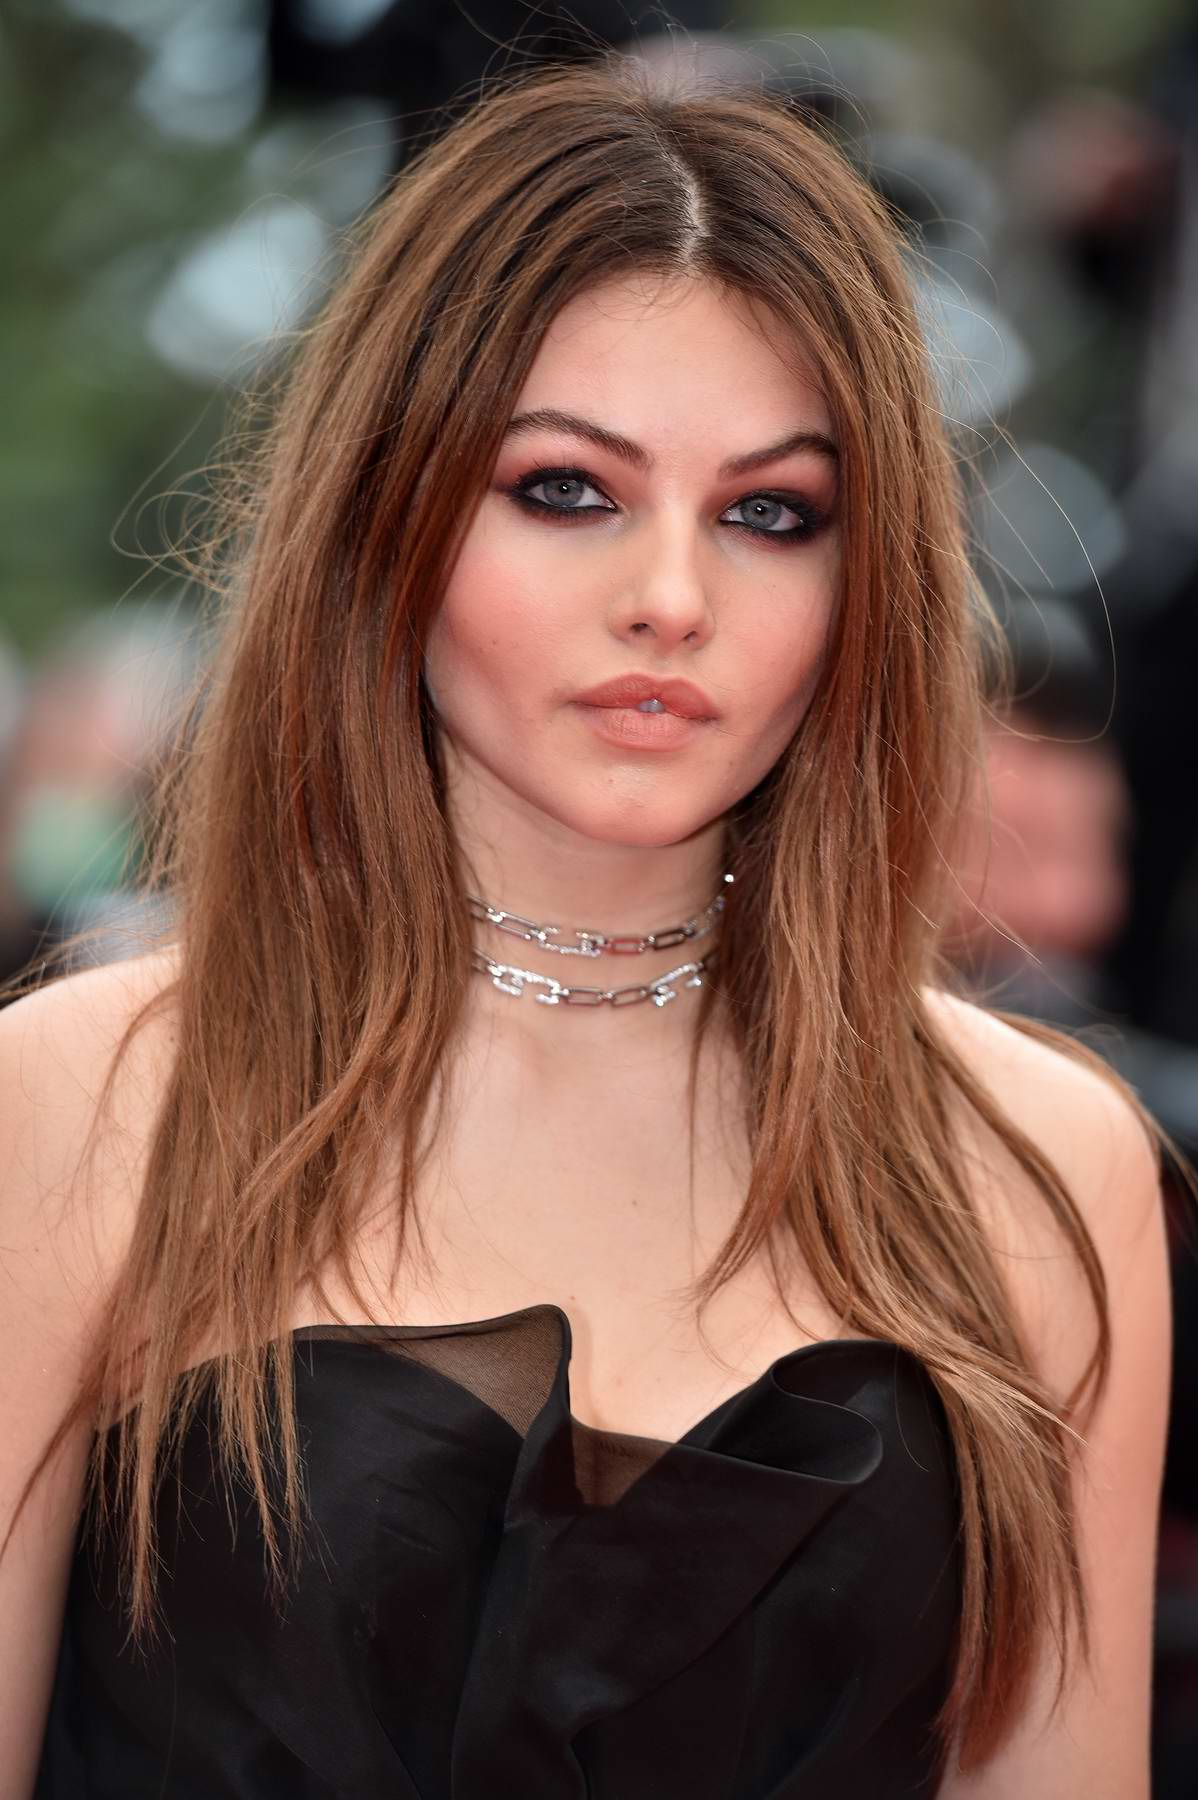 Thylane Blondeau at the premiere of 'Sorry Angel' during 71st Cannes Film Festival in Cannes, France